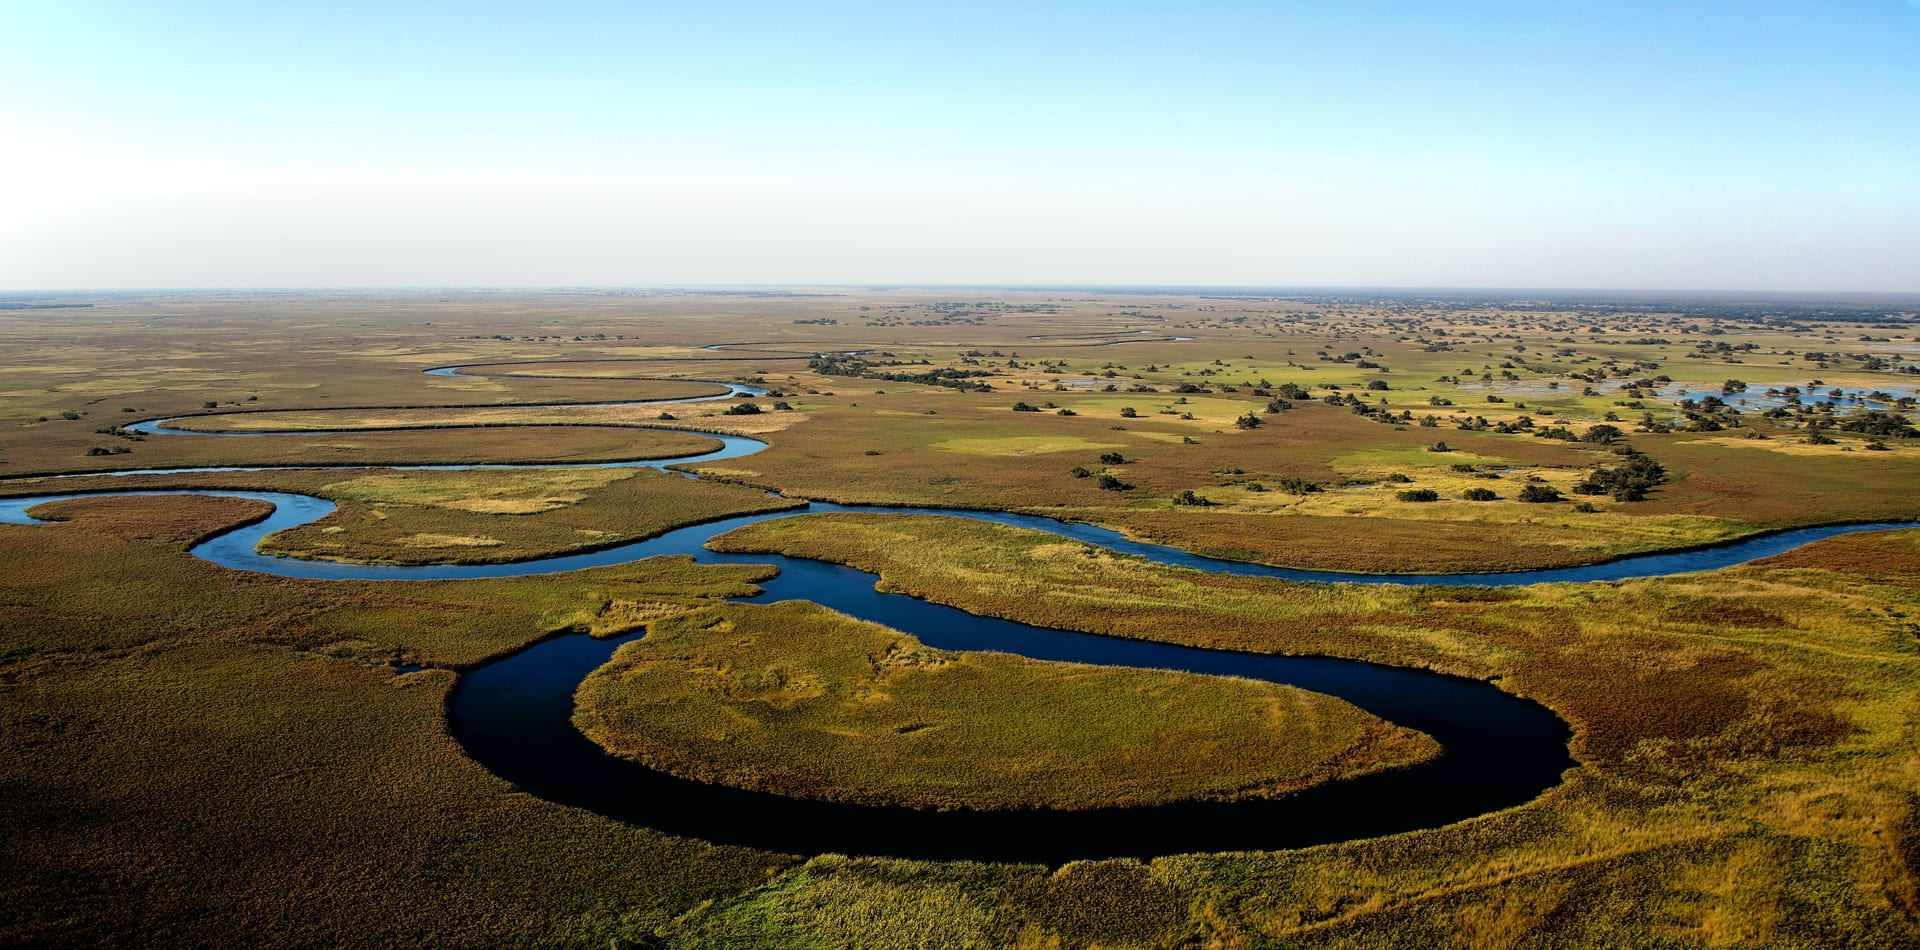 The Okavango Delta in Botswana